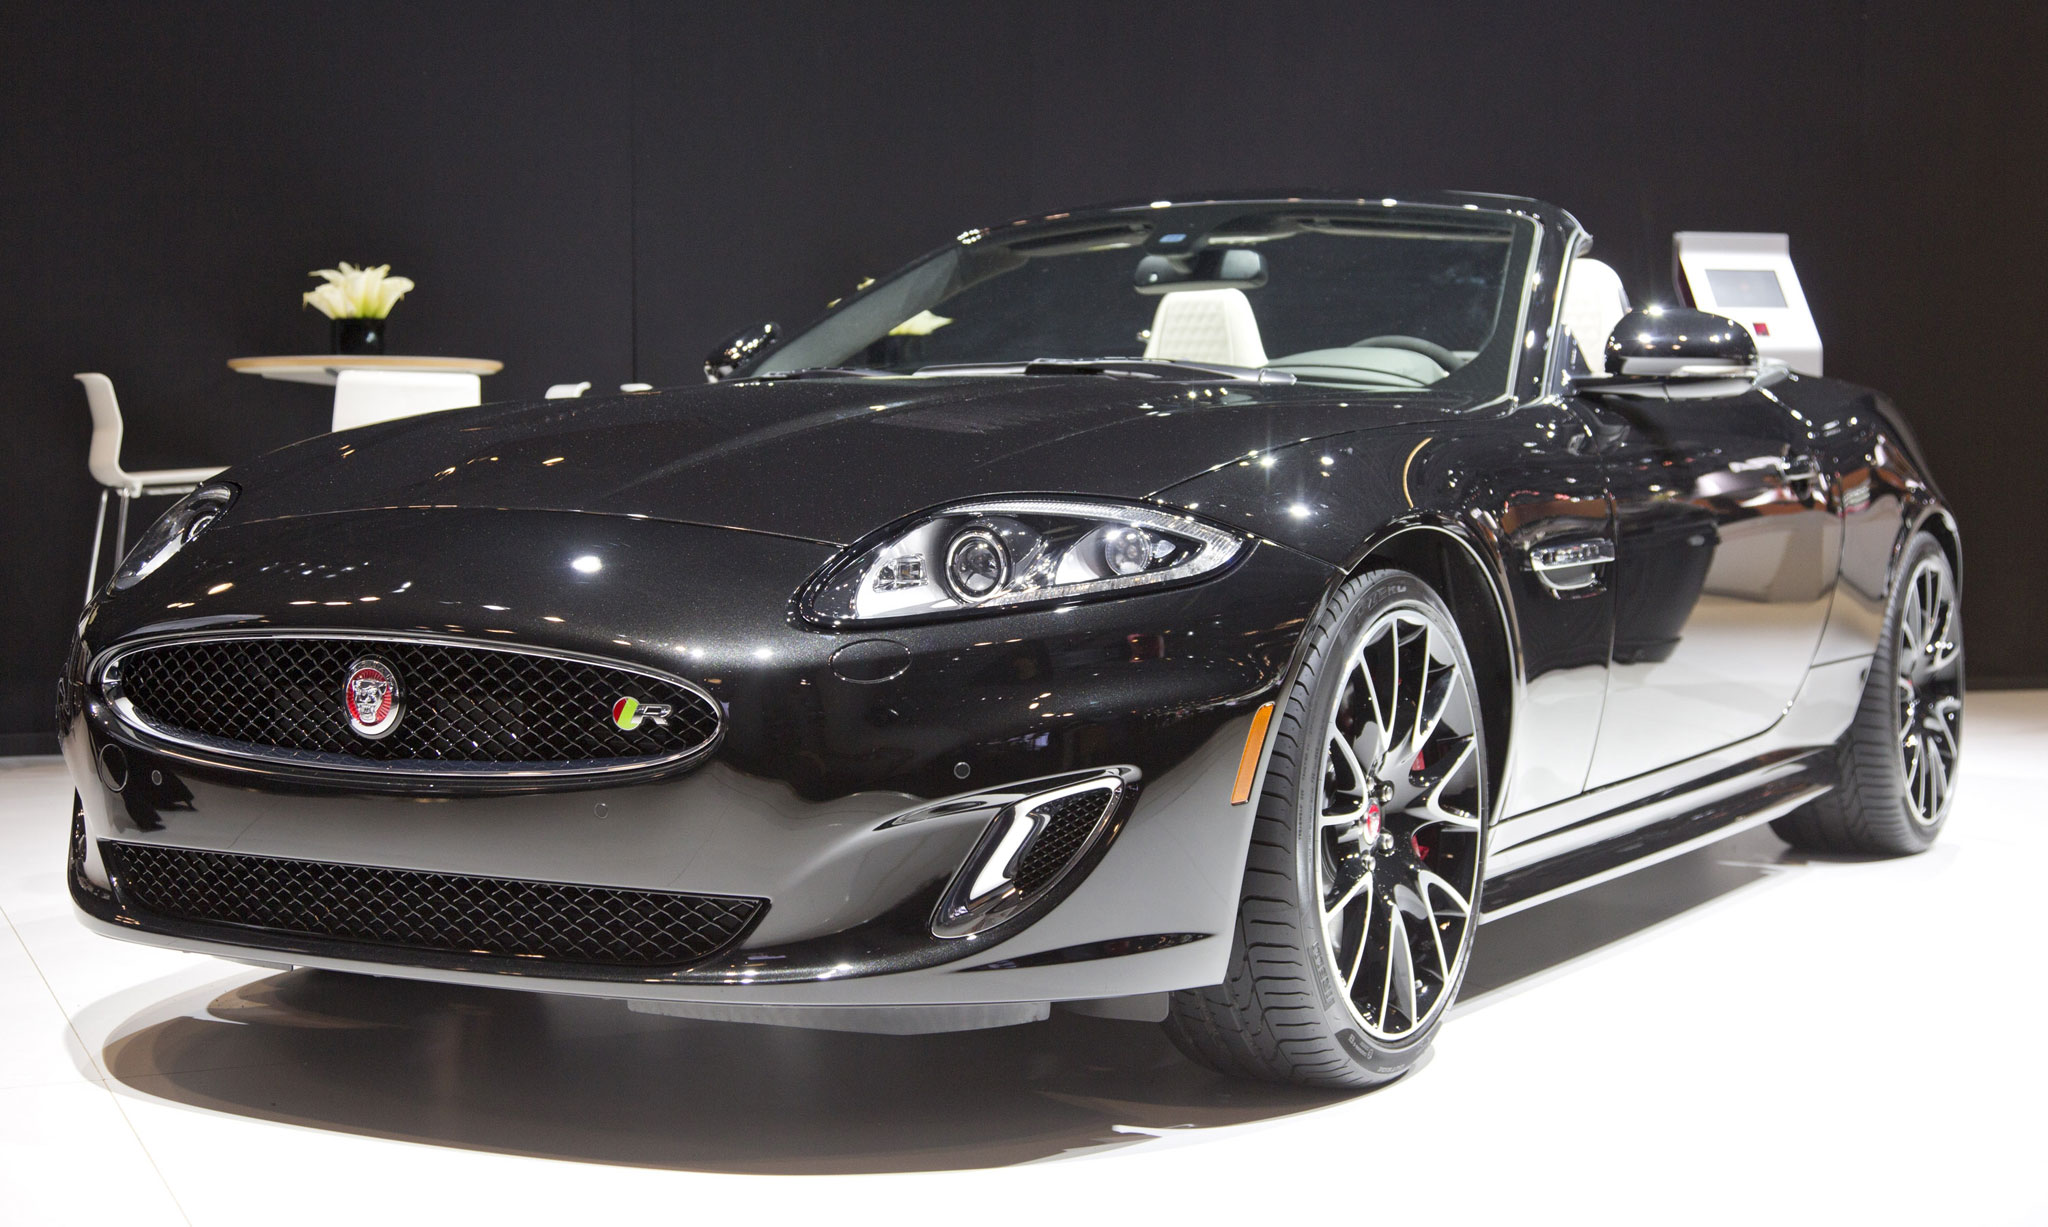 2015 Jaguar XK Final Fifty Limited Edition Is The Car's Swan Song